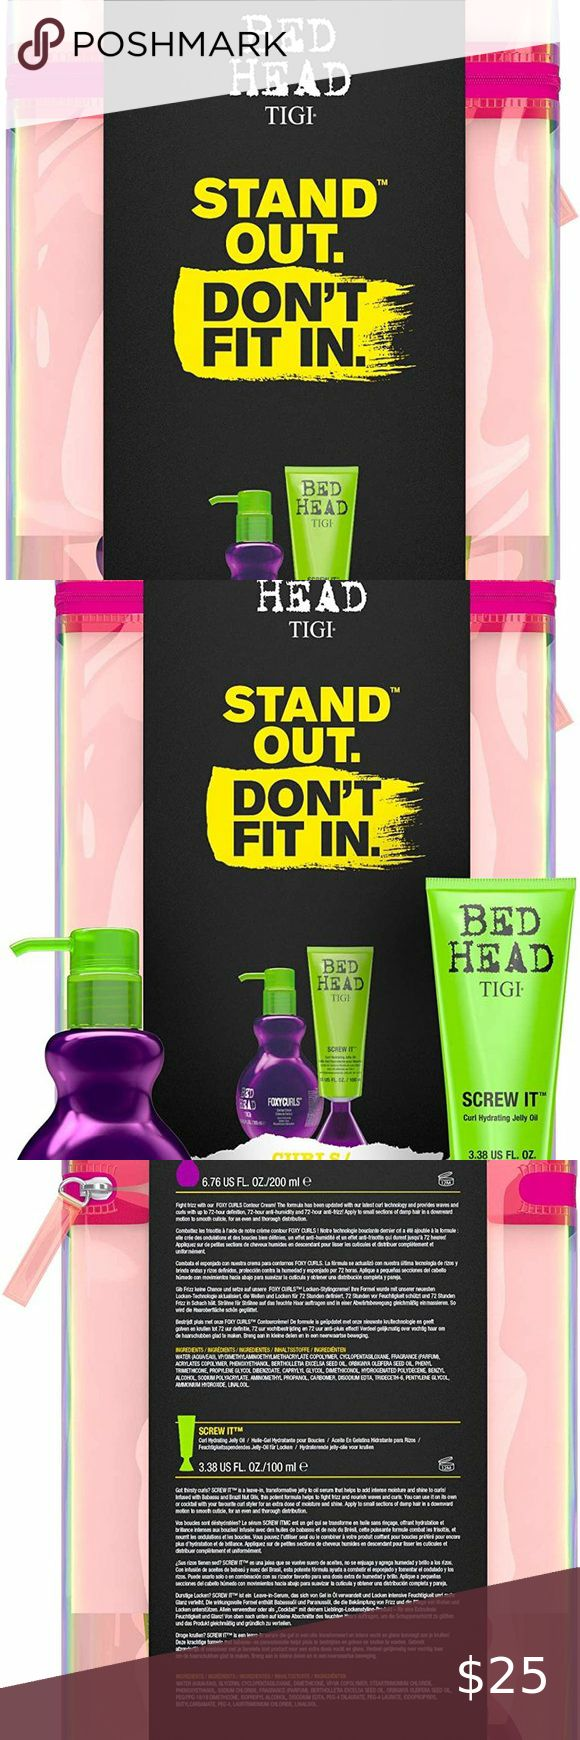 TIGI Bed Head Curly Hair Gift Set with Hydrating in 2020